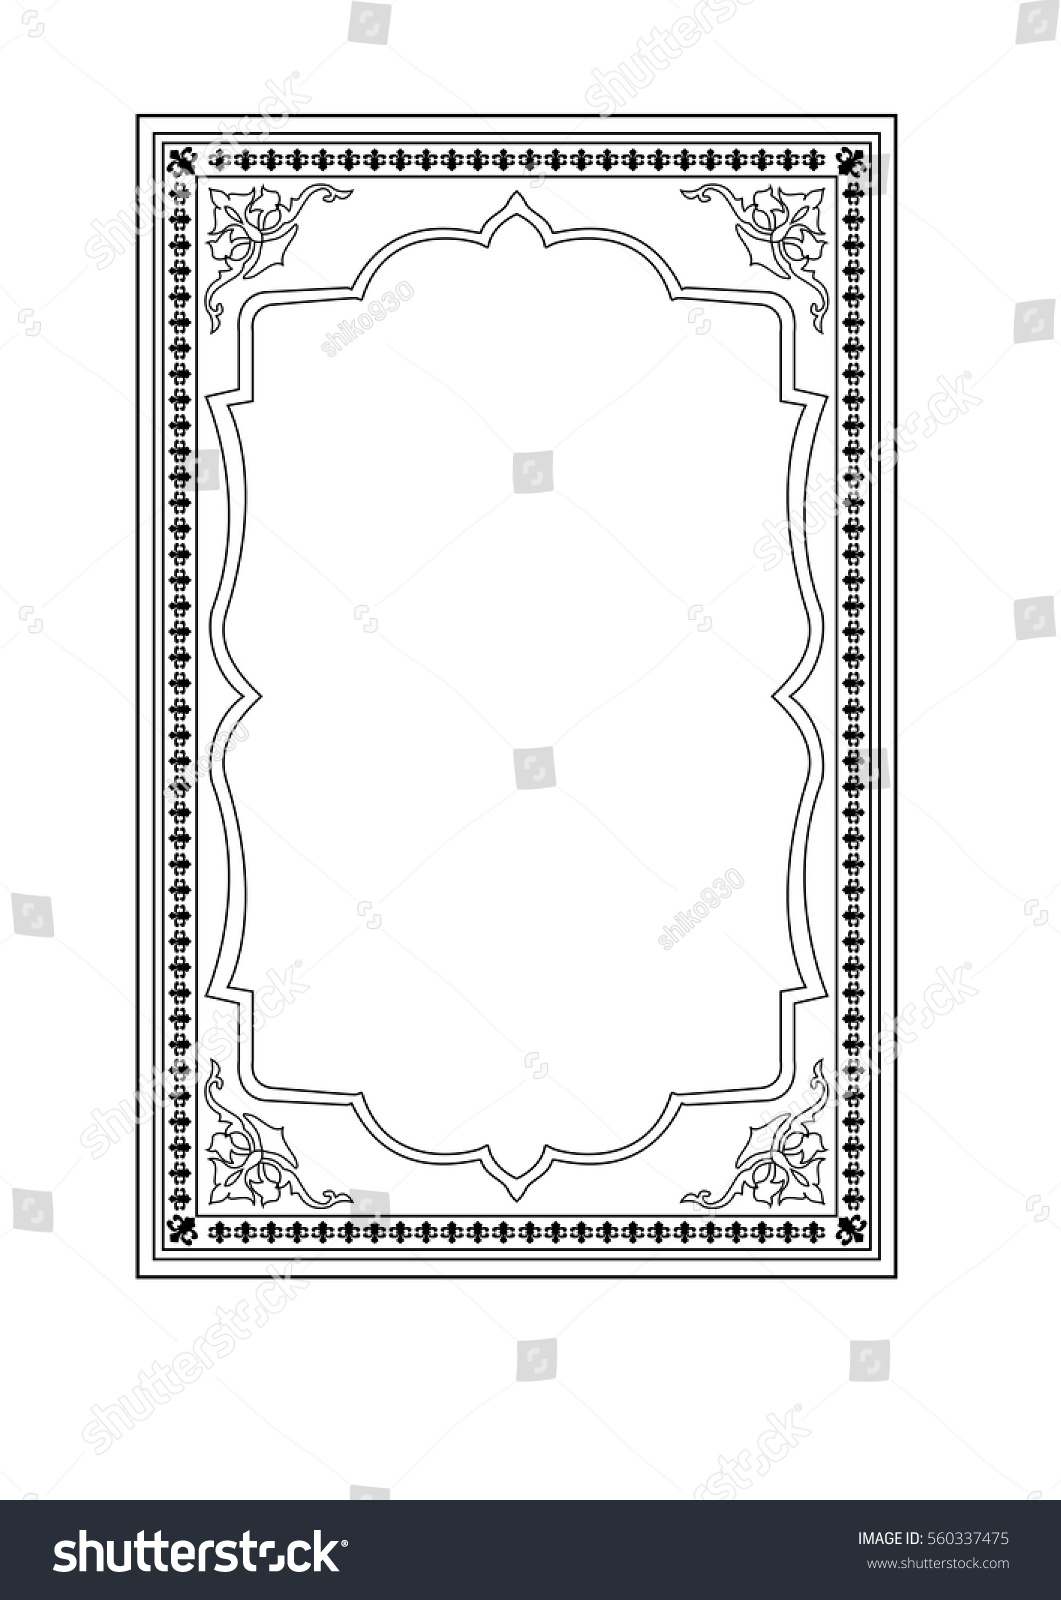 Book Cover Design Hd ~ Islamic book cover stock vector royalty free